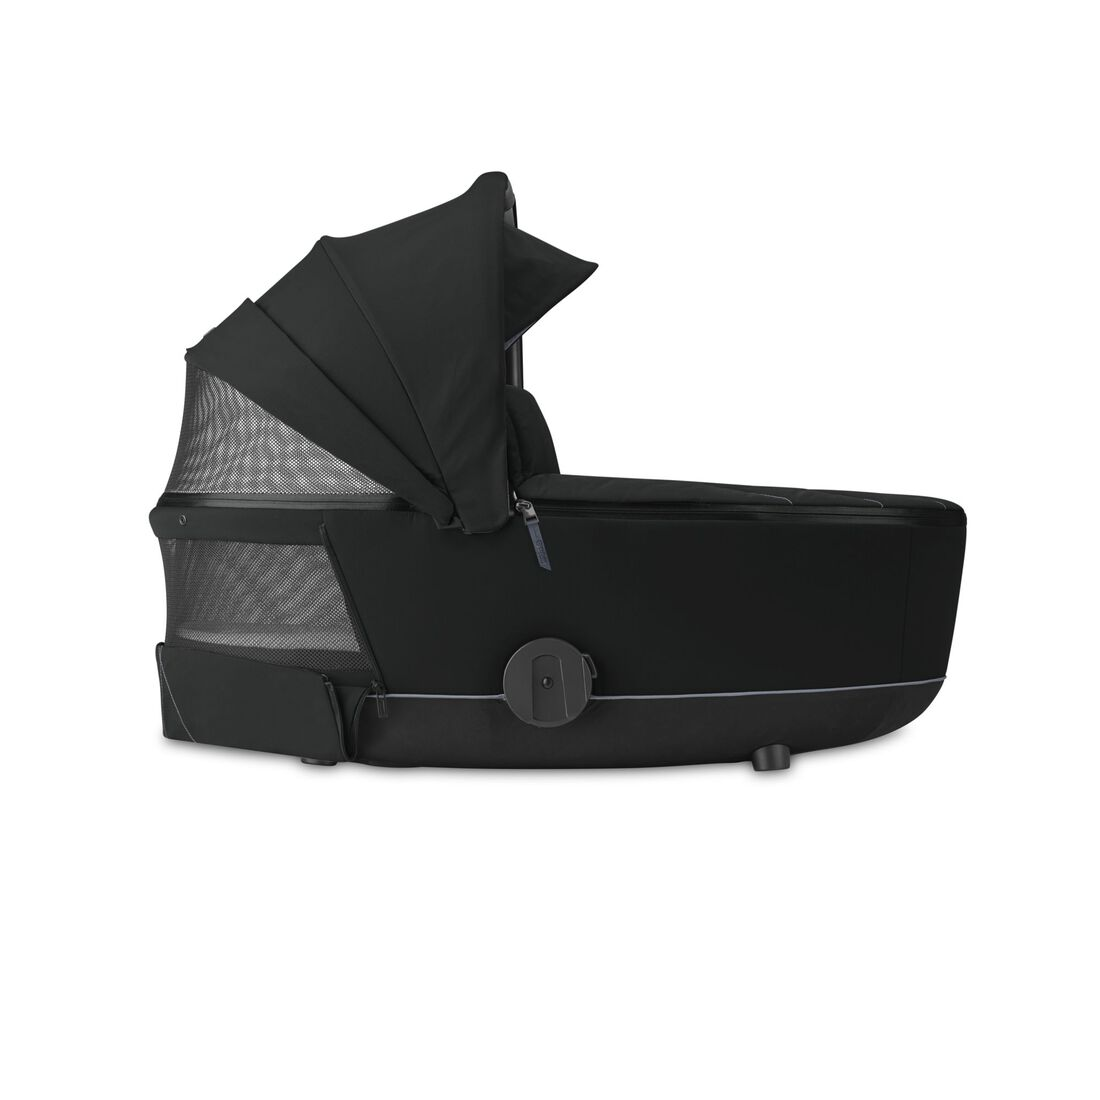 CYBEX Mios Lux Carry Cot - Deep Black in Deep Black large image number 3